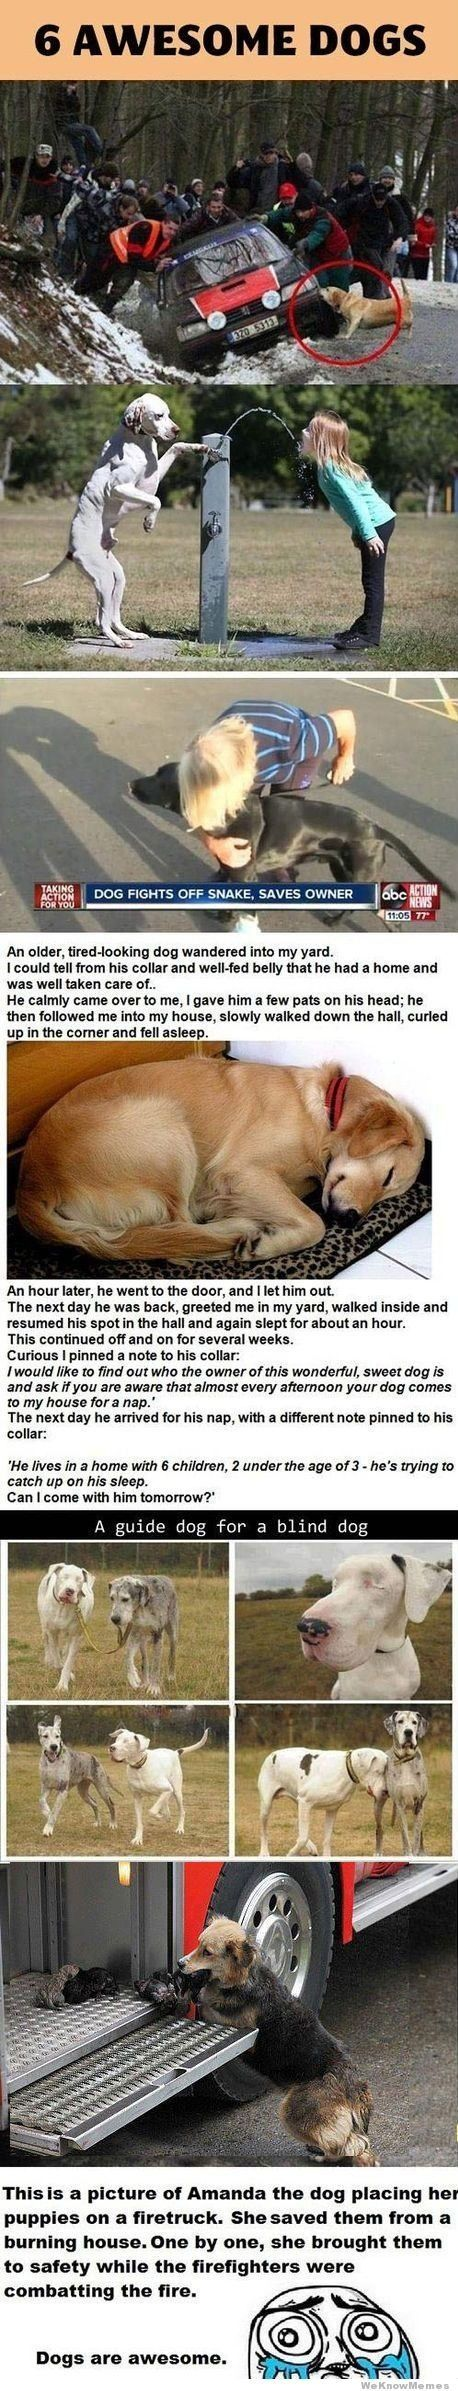 6 #awesome #dogs